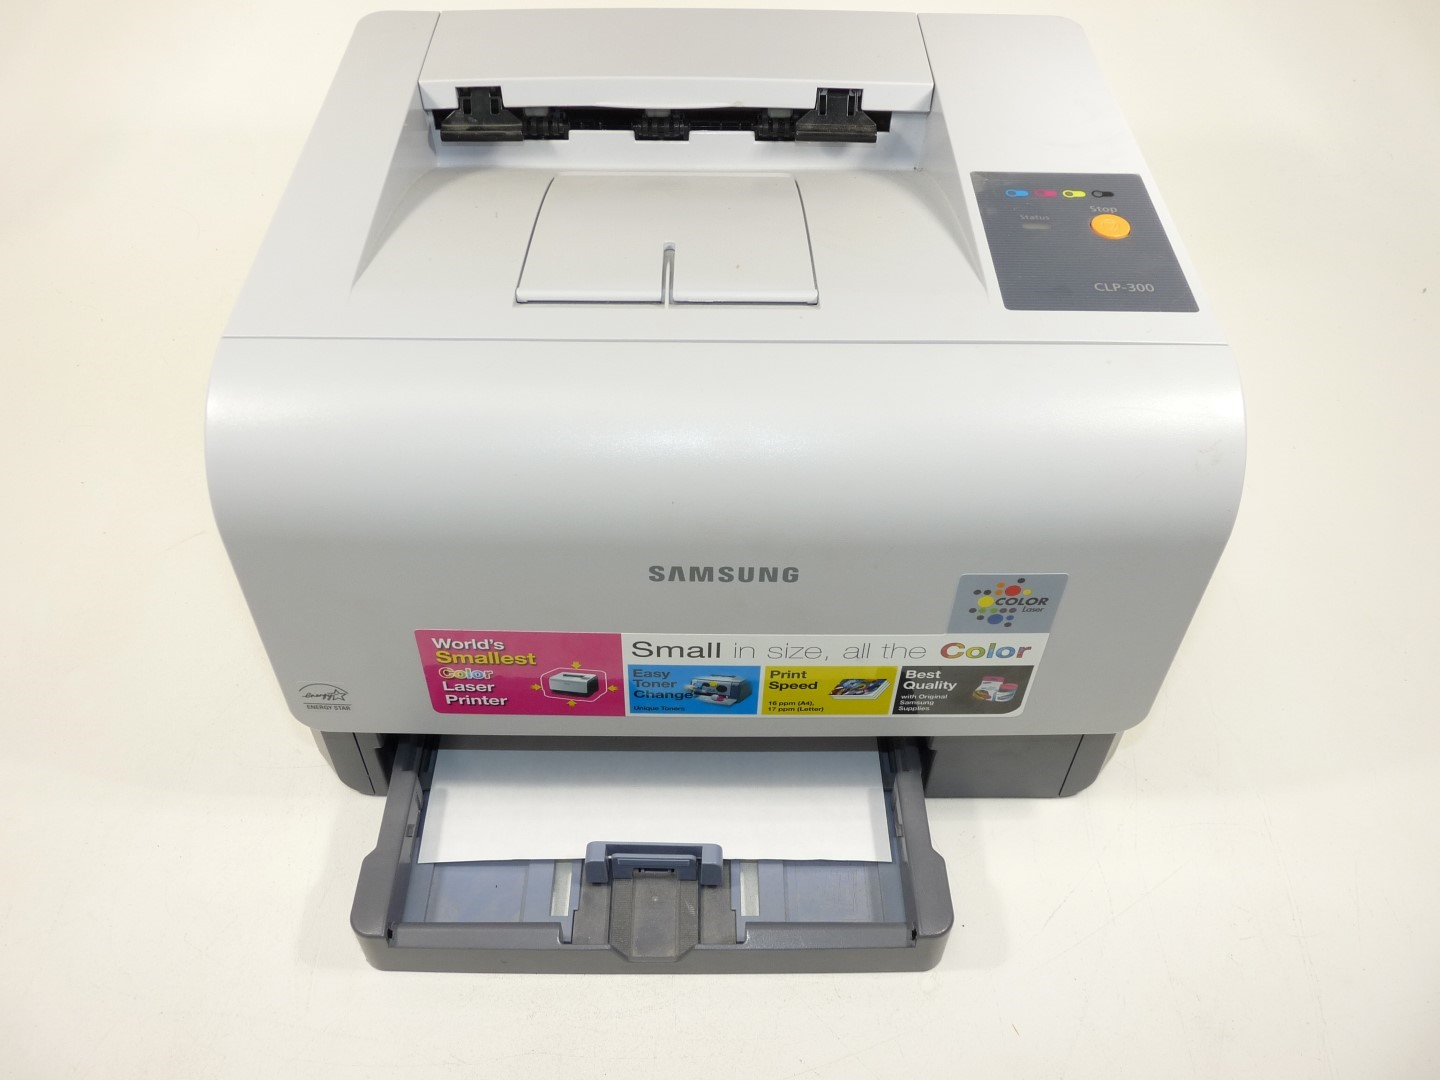 Samsung CLP-300 Color Laser Printer w/Test Page 2k Page Count | eBay